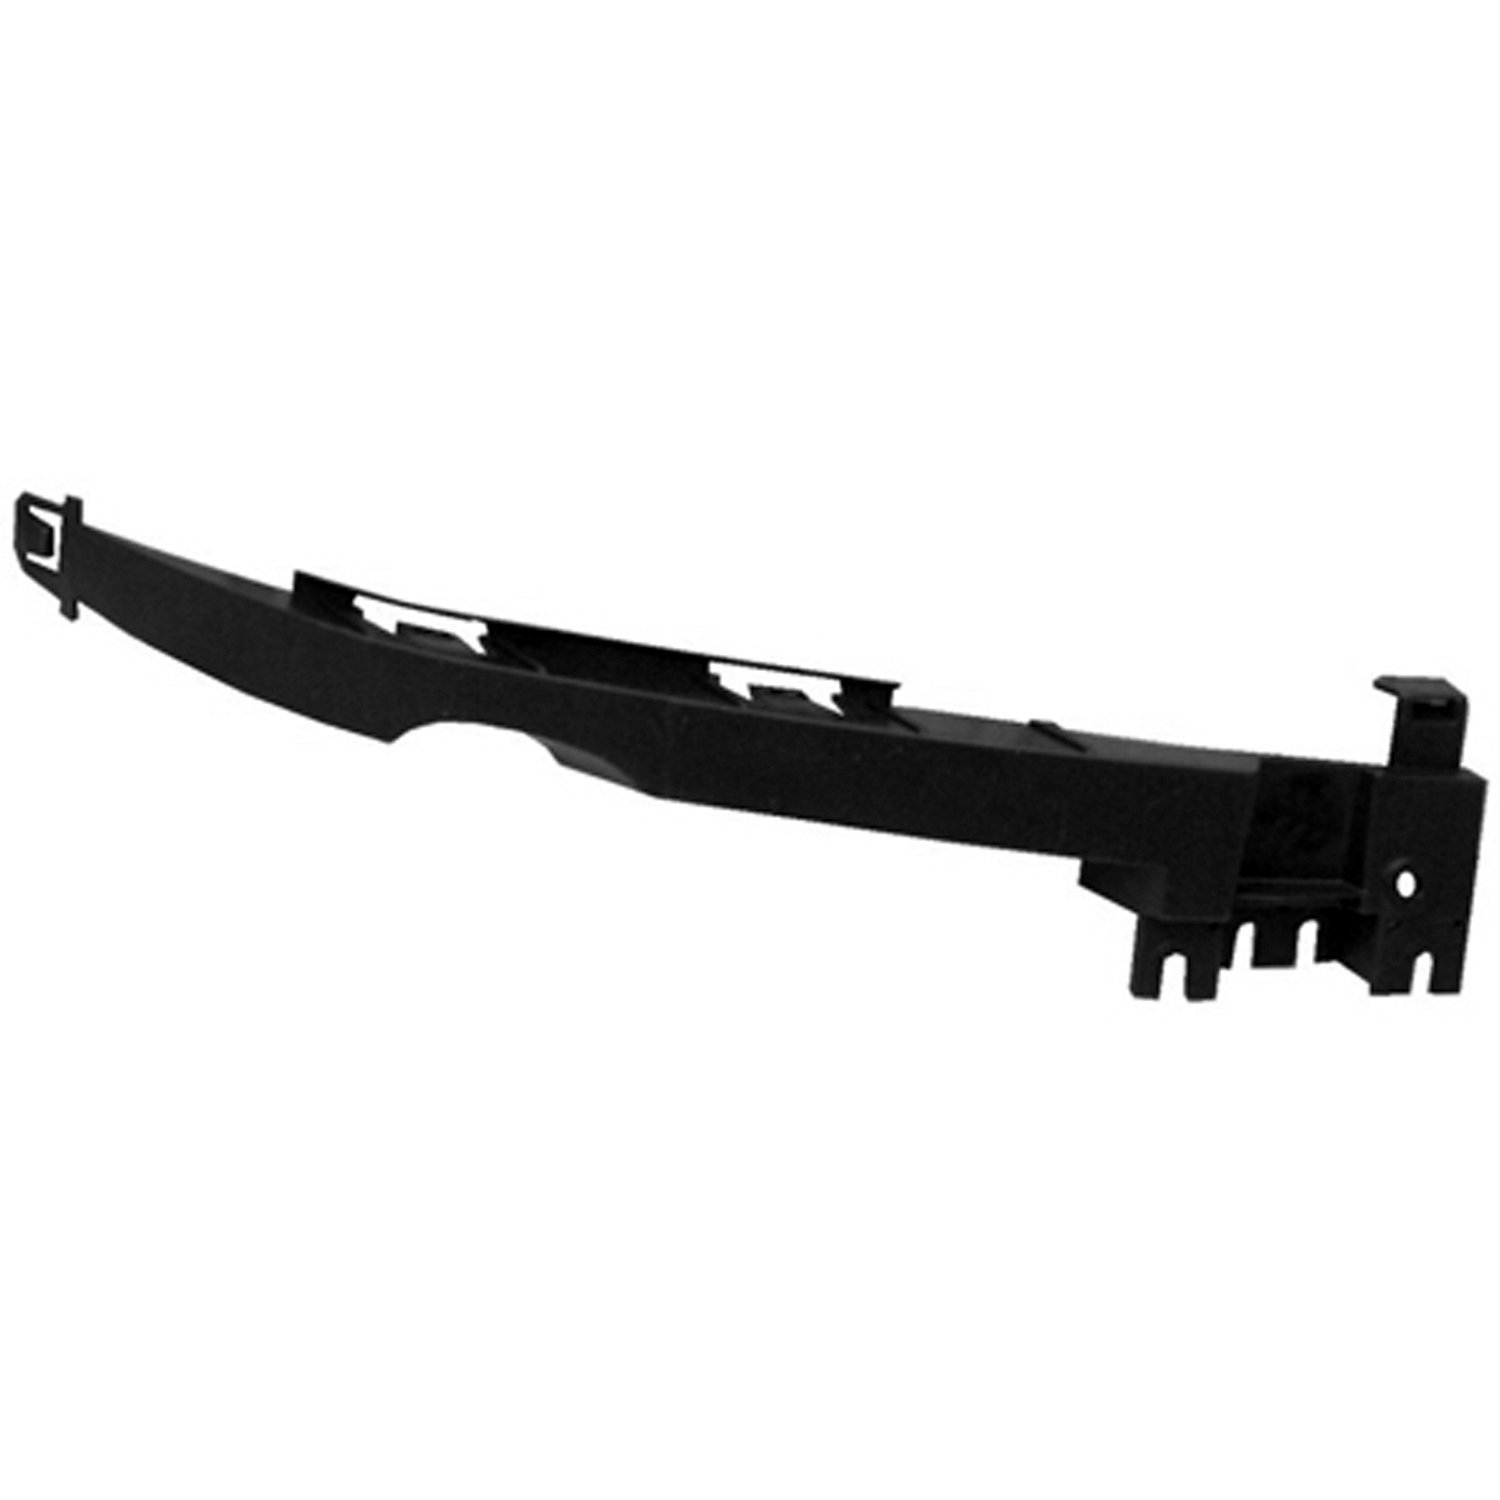 Crash Parts Plus Crash Parts Plus Front Bumper Cover Support for Buick Allure, LaCrosse